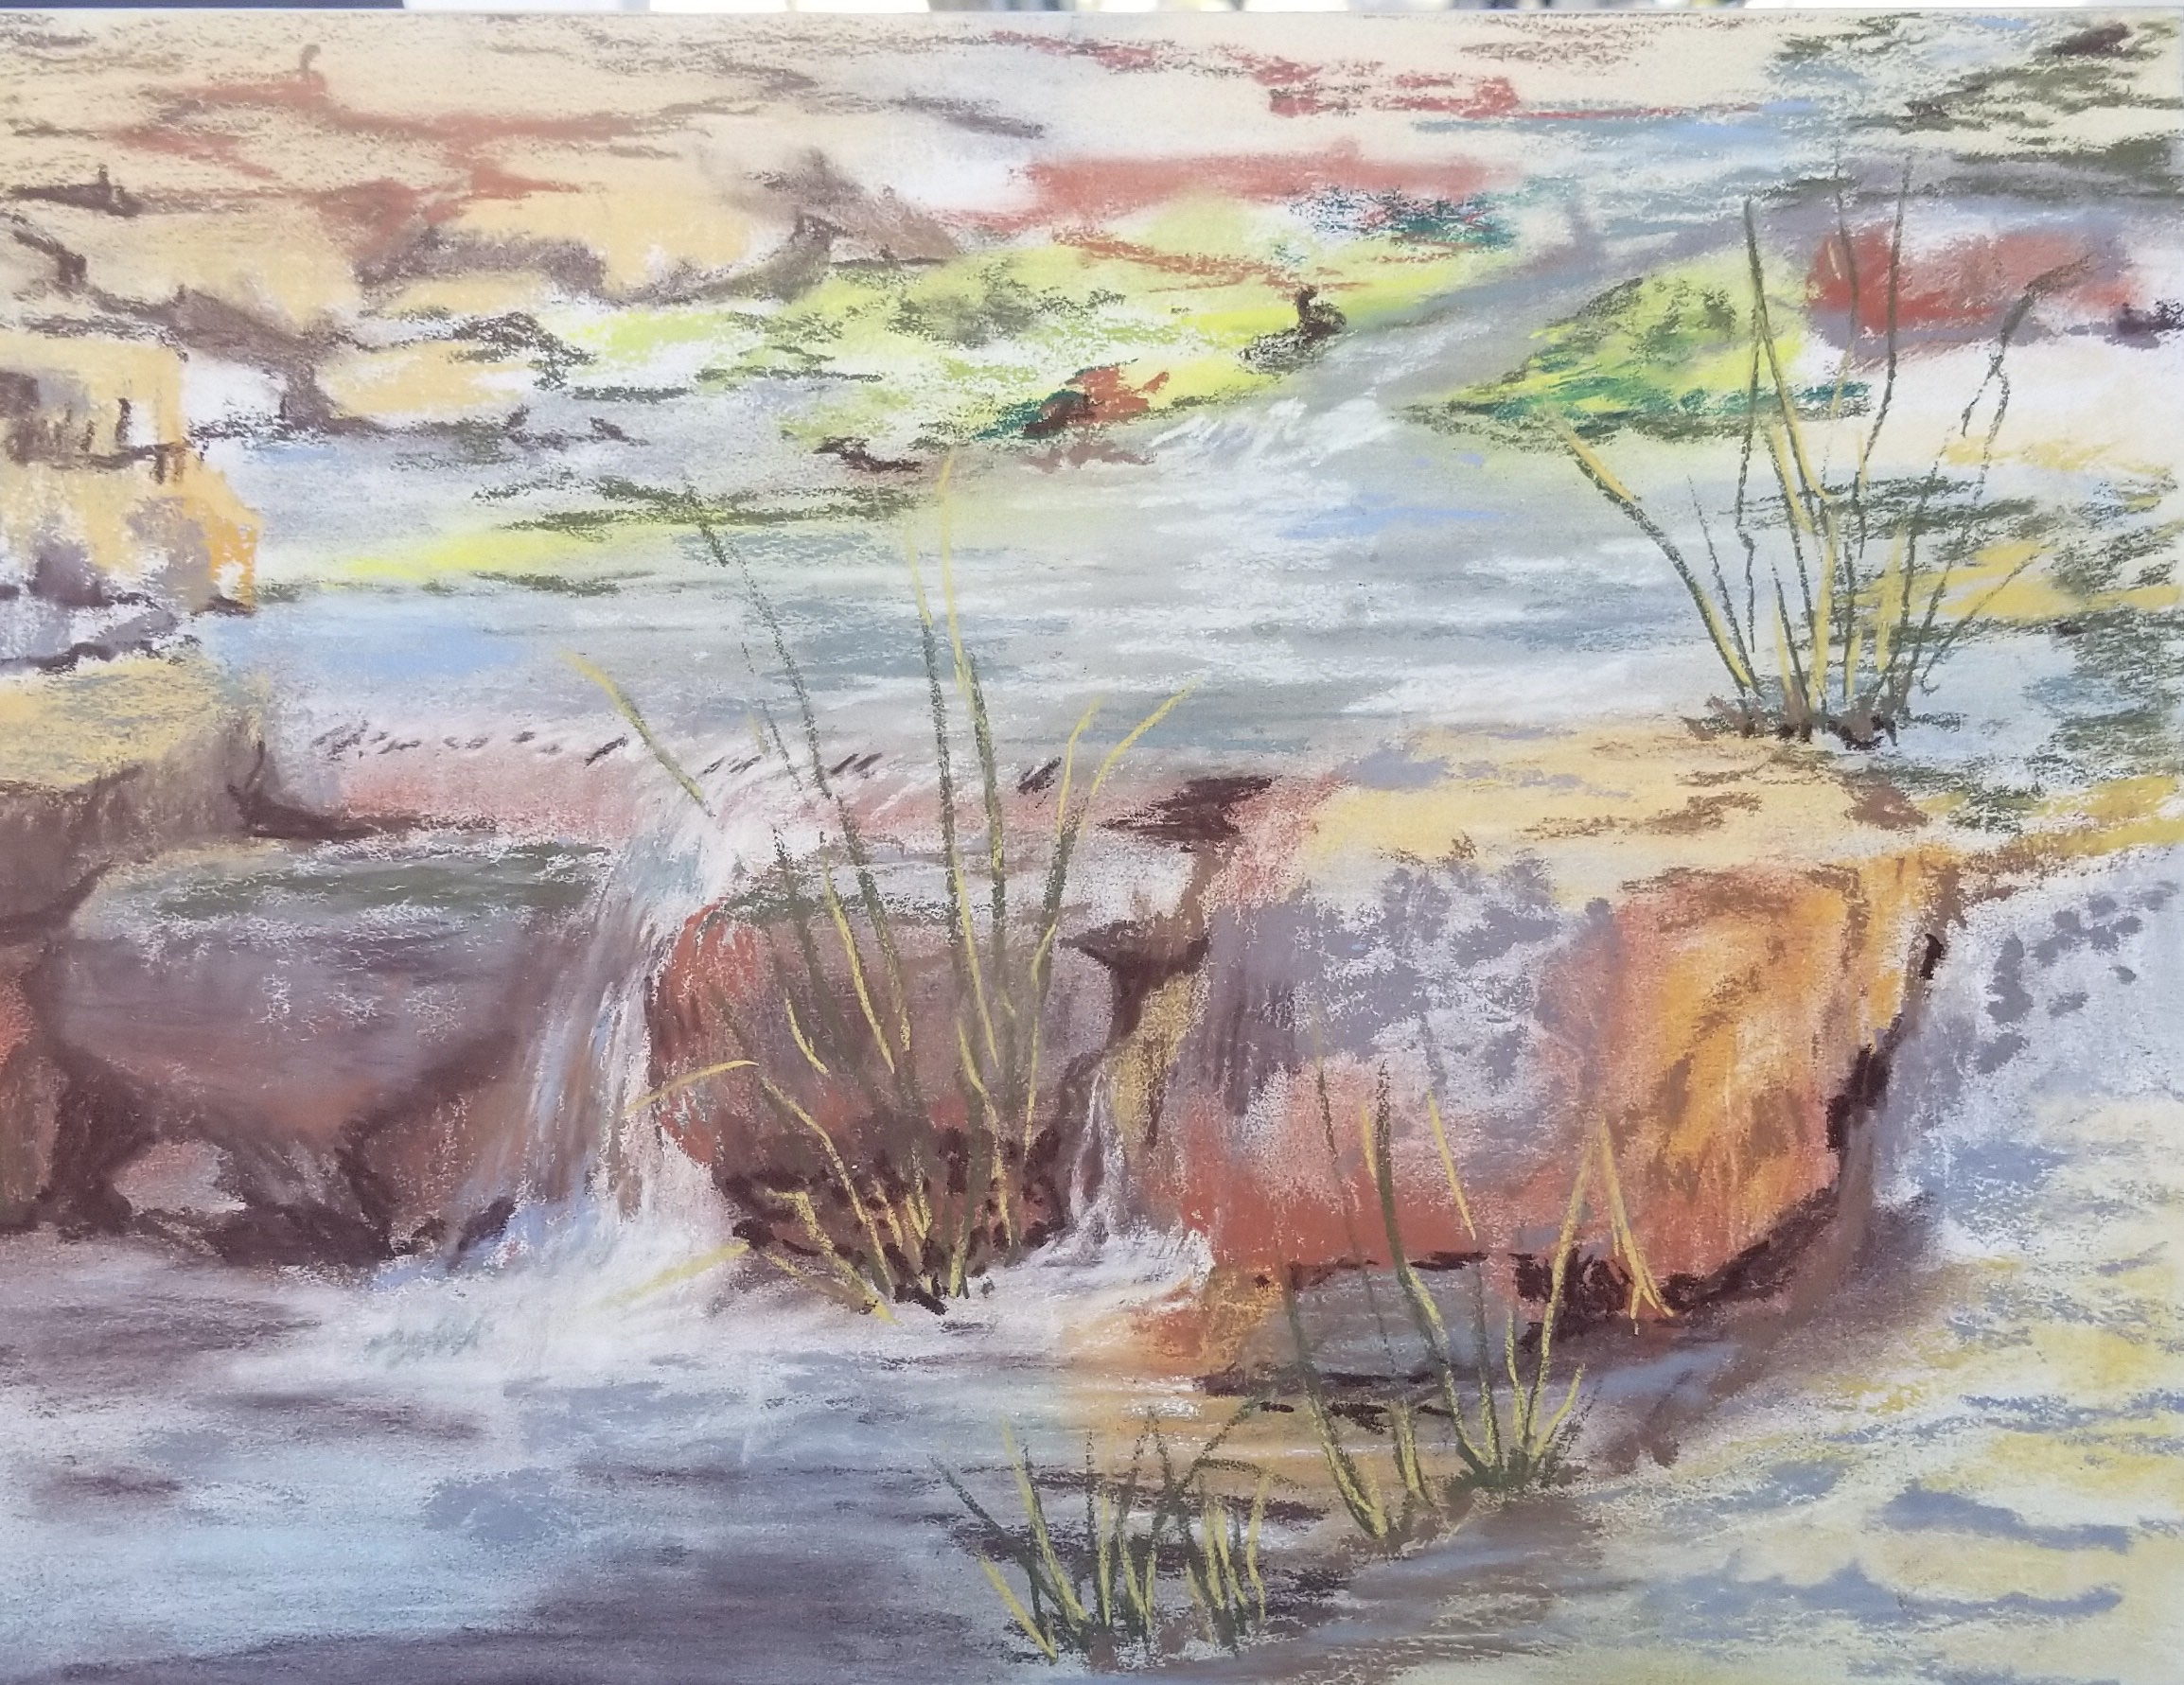 Watercolor Landscape by Jessica Disbrow